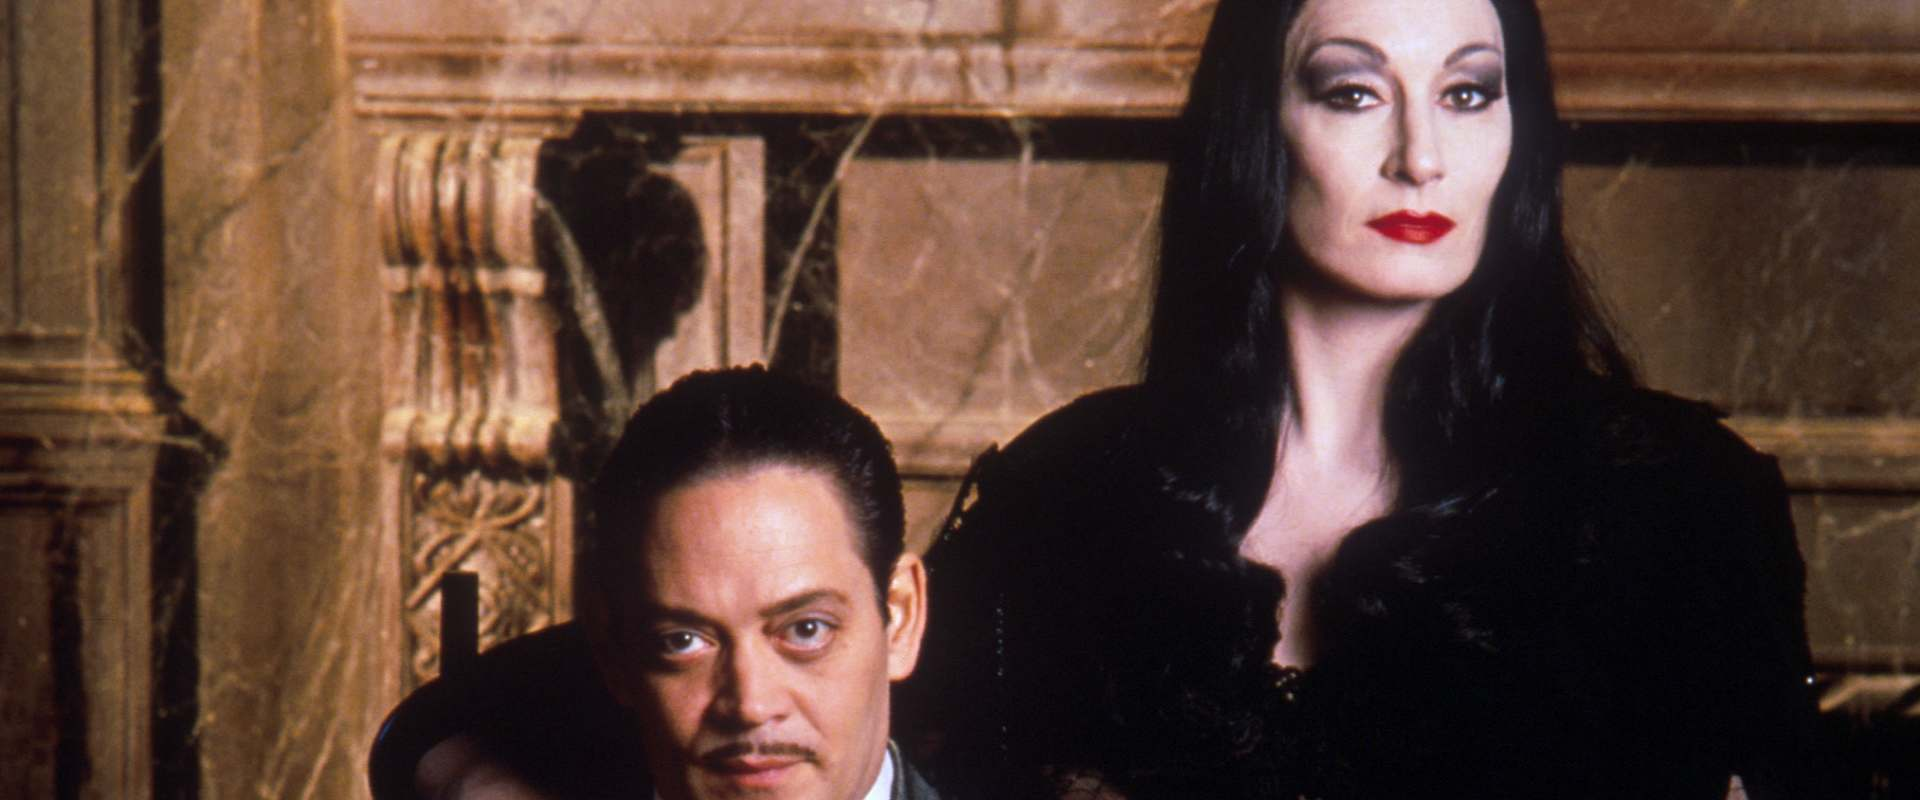 The Addams Family background 2